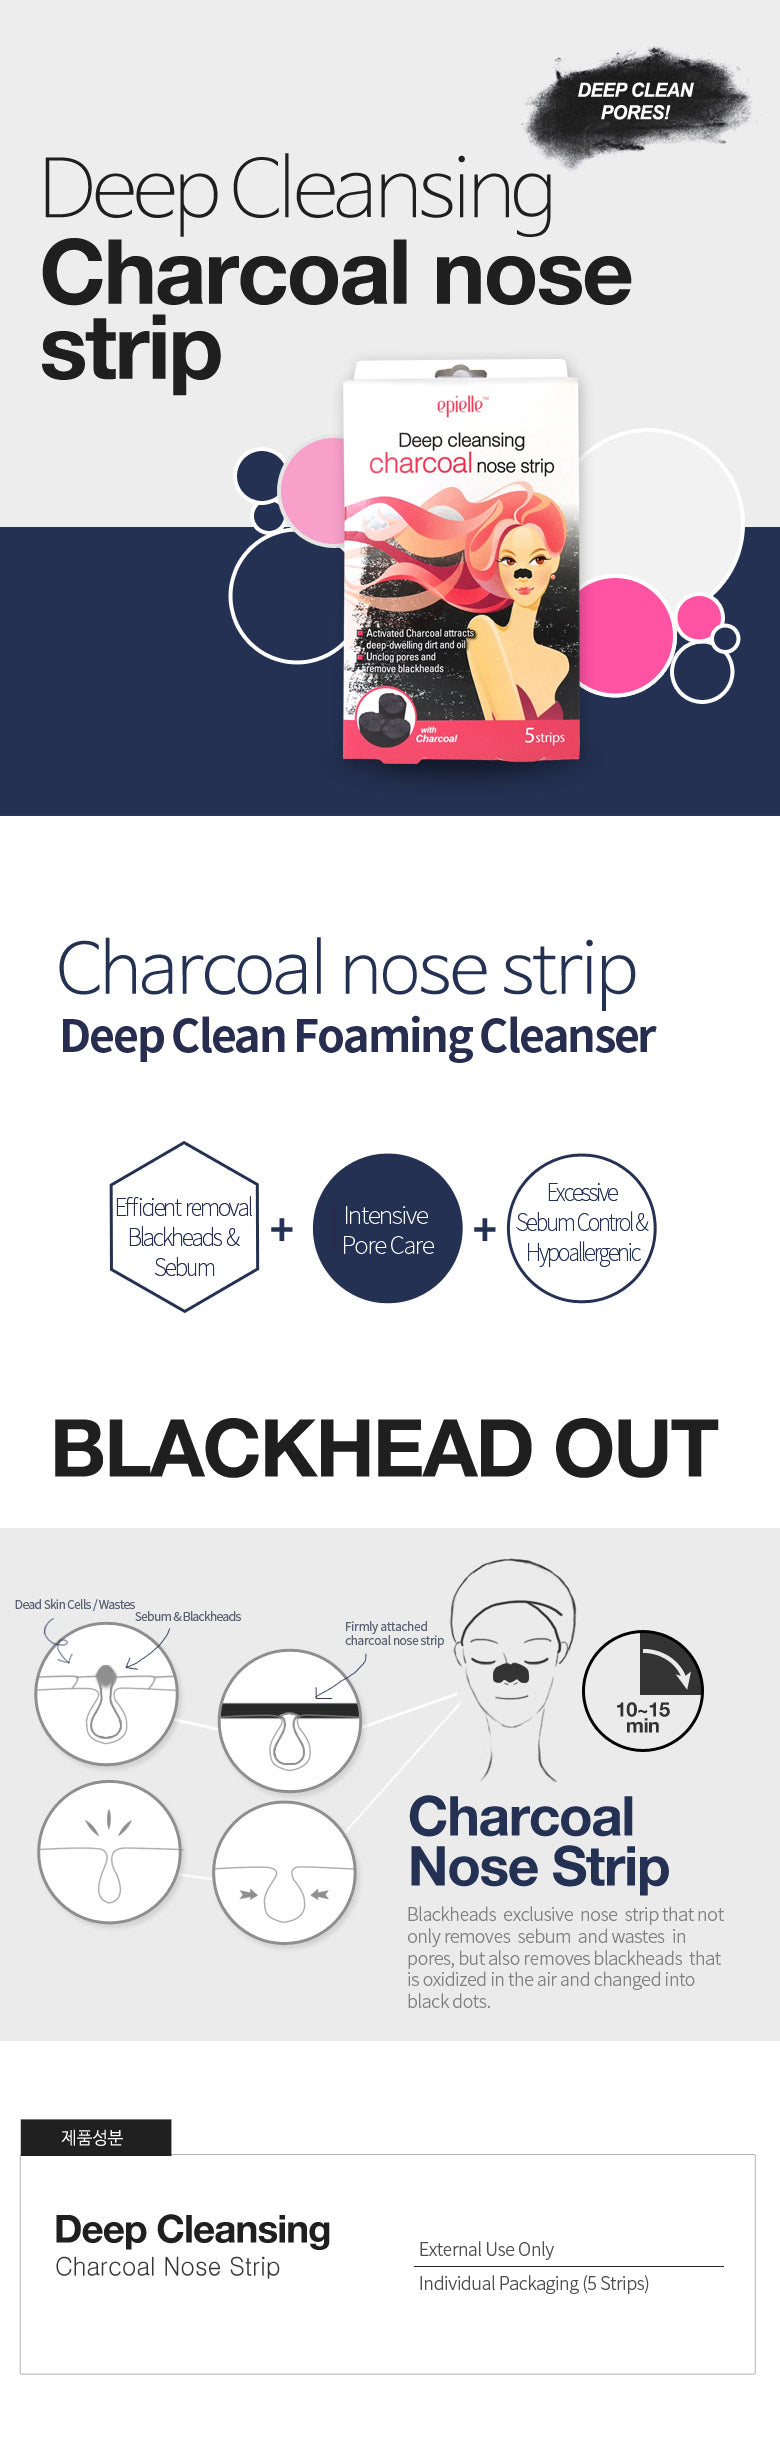 epielle®Deep Cleansing Charcoal Nose Strip Blackhead Remover